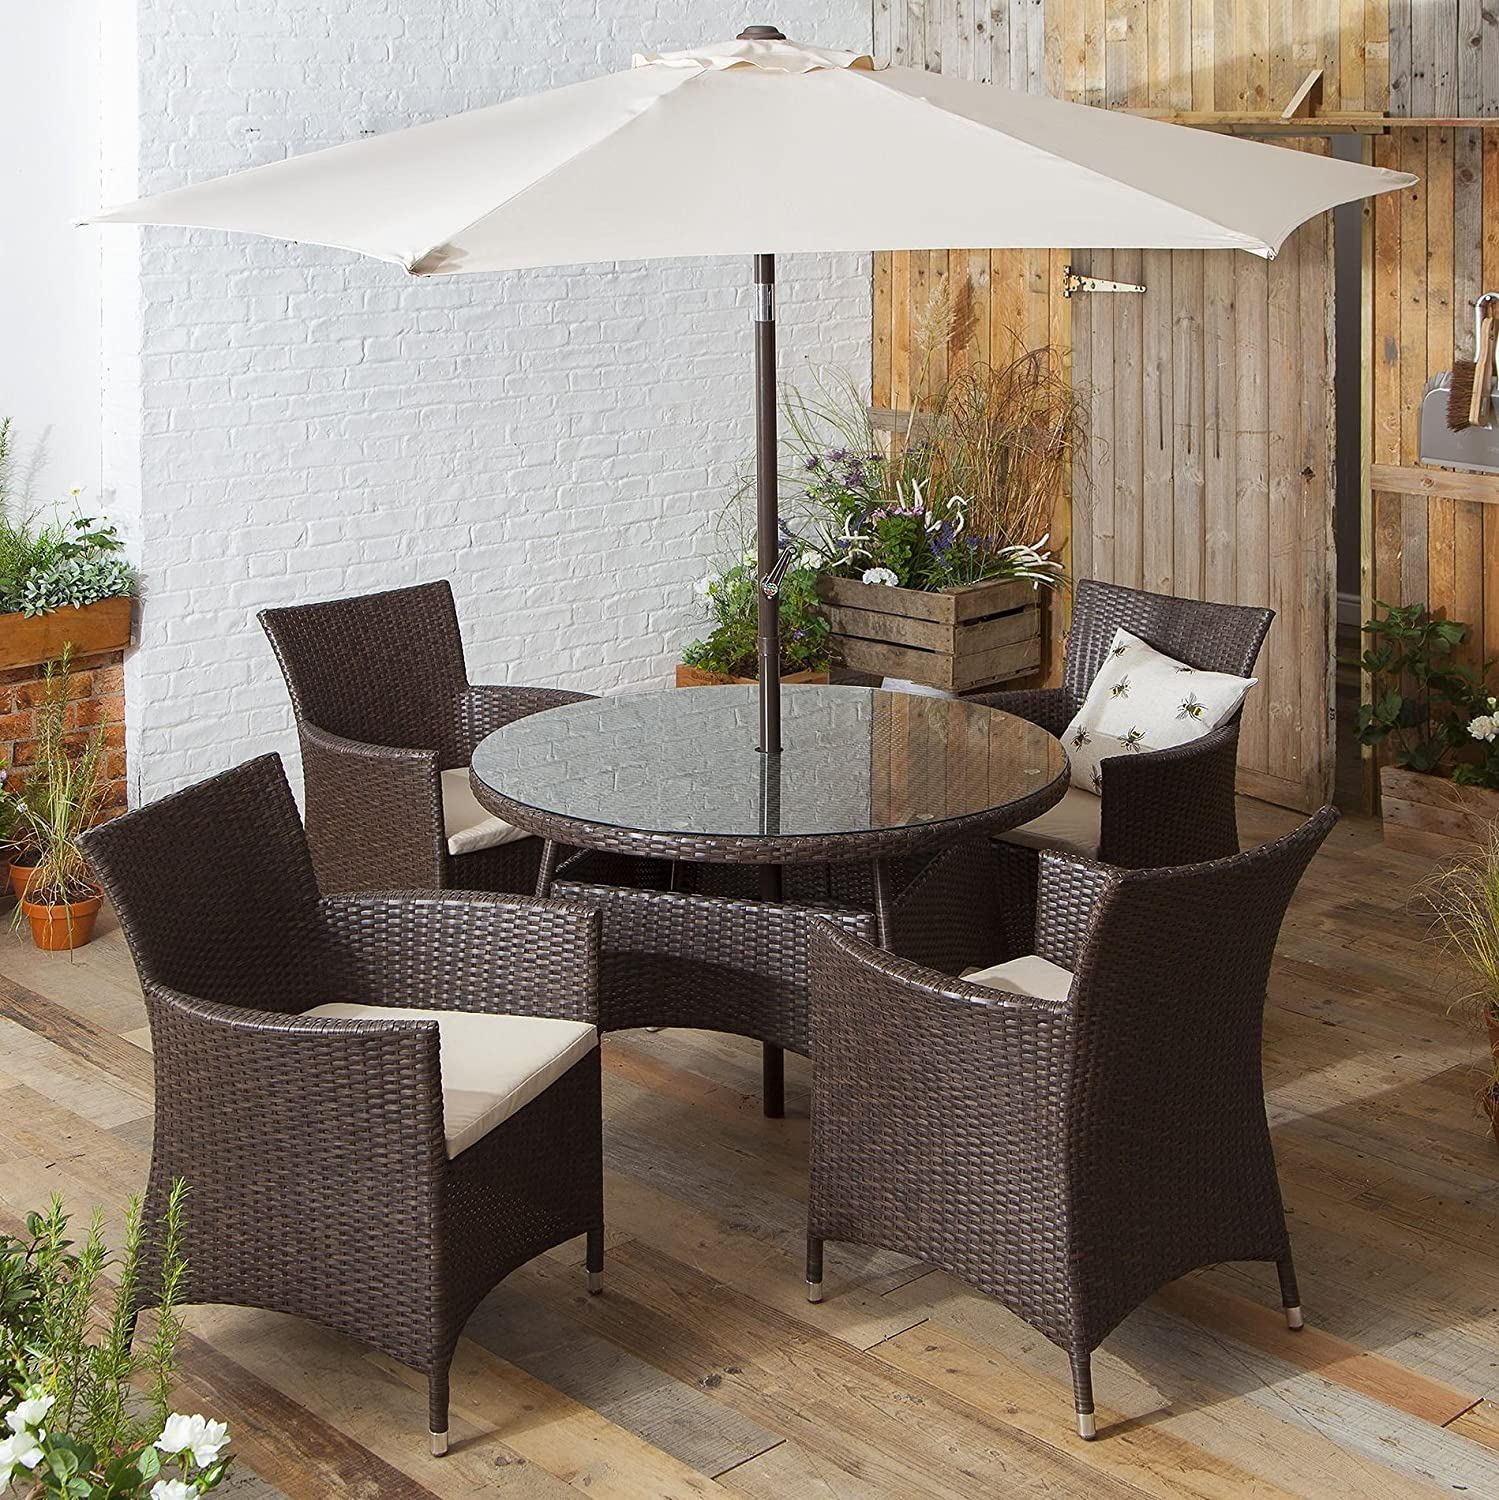 Rattan 6 Piece Garden Dining Set Table With Parasol And 4 Chairs   Brown:  Amazon.co.uk: Kitchen U0026 Home